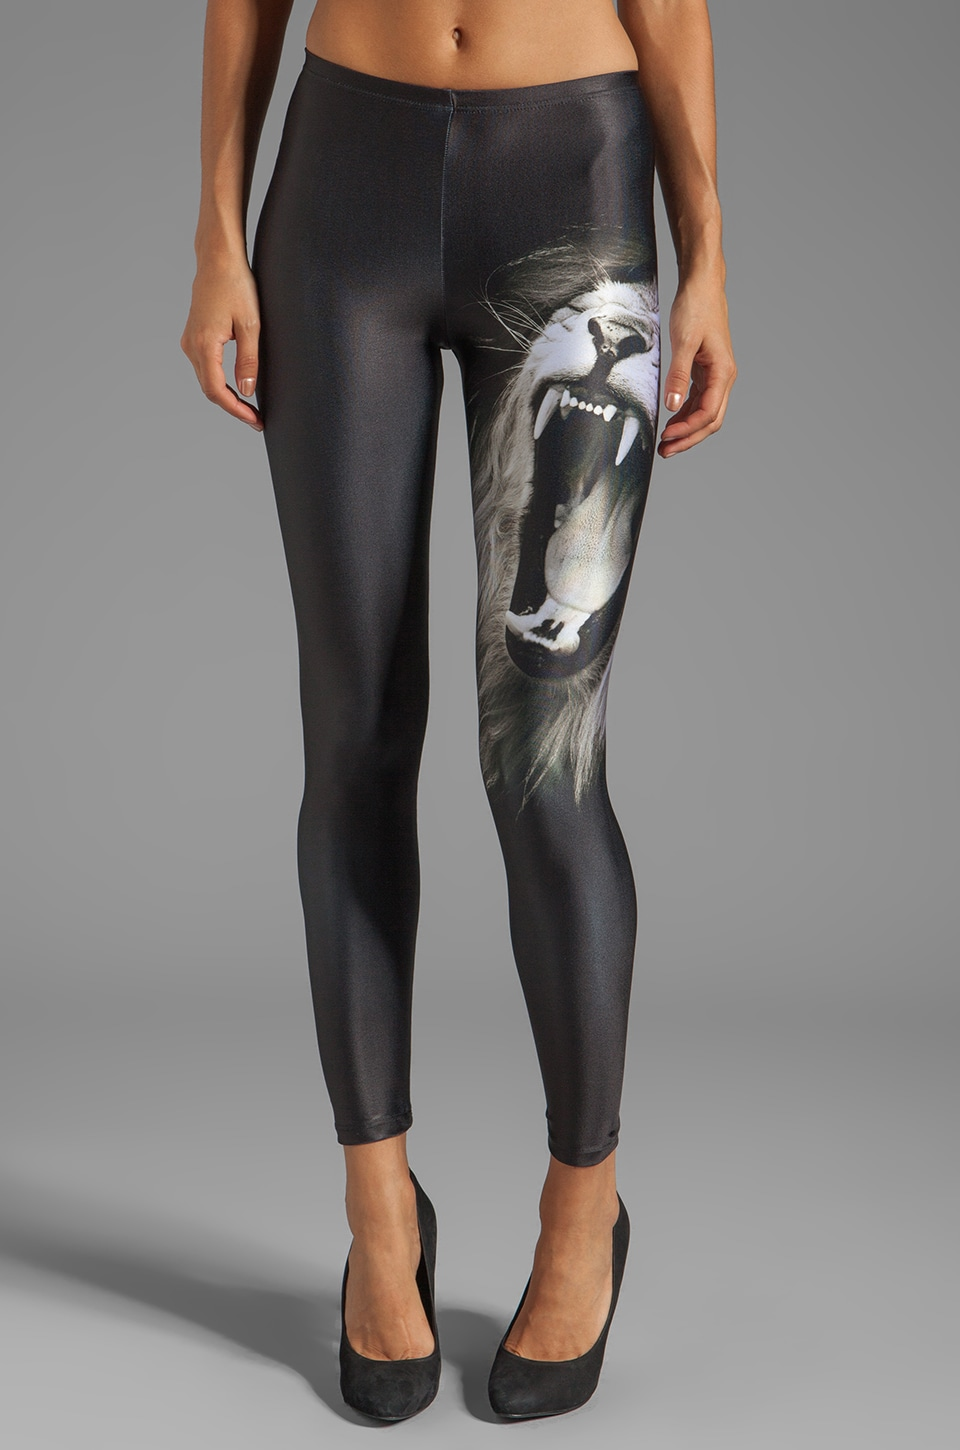 We Are Handsome Leggings in The Impressor